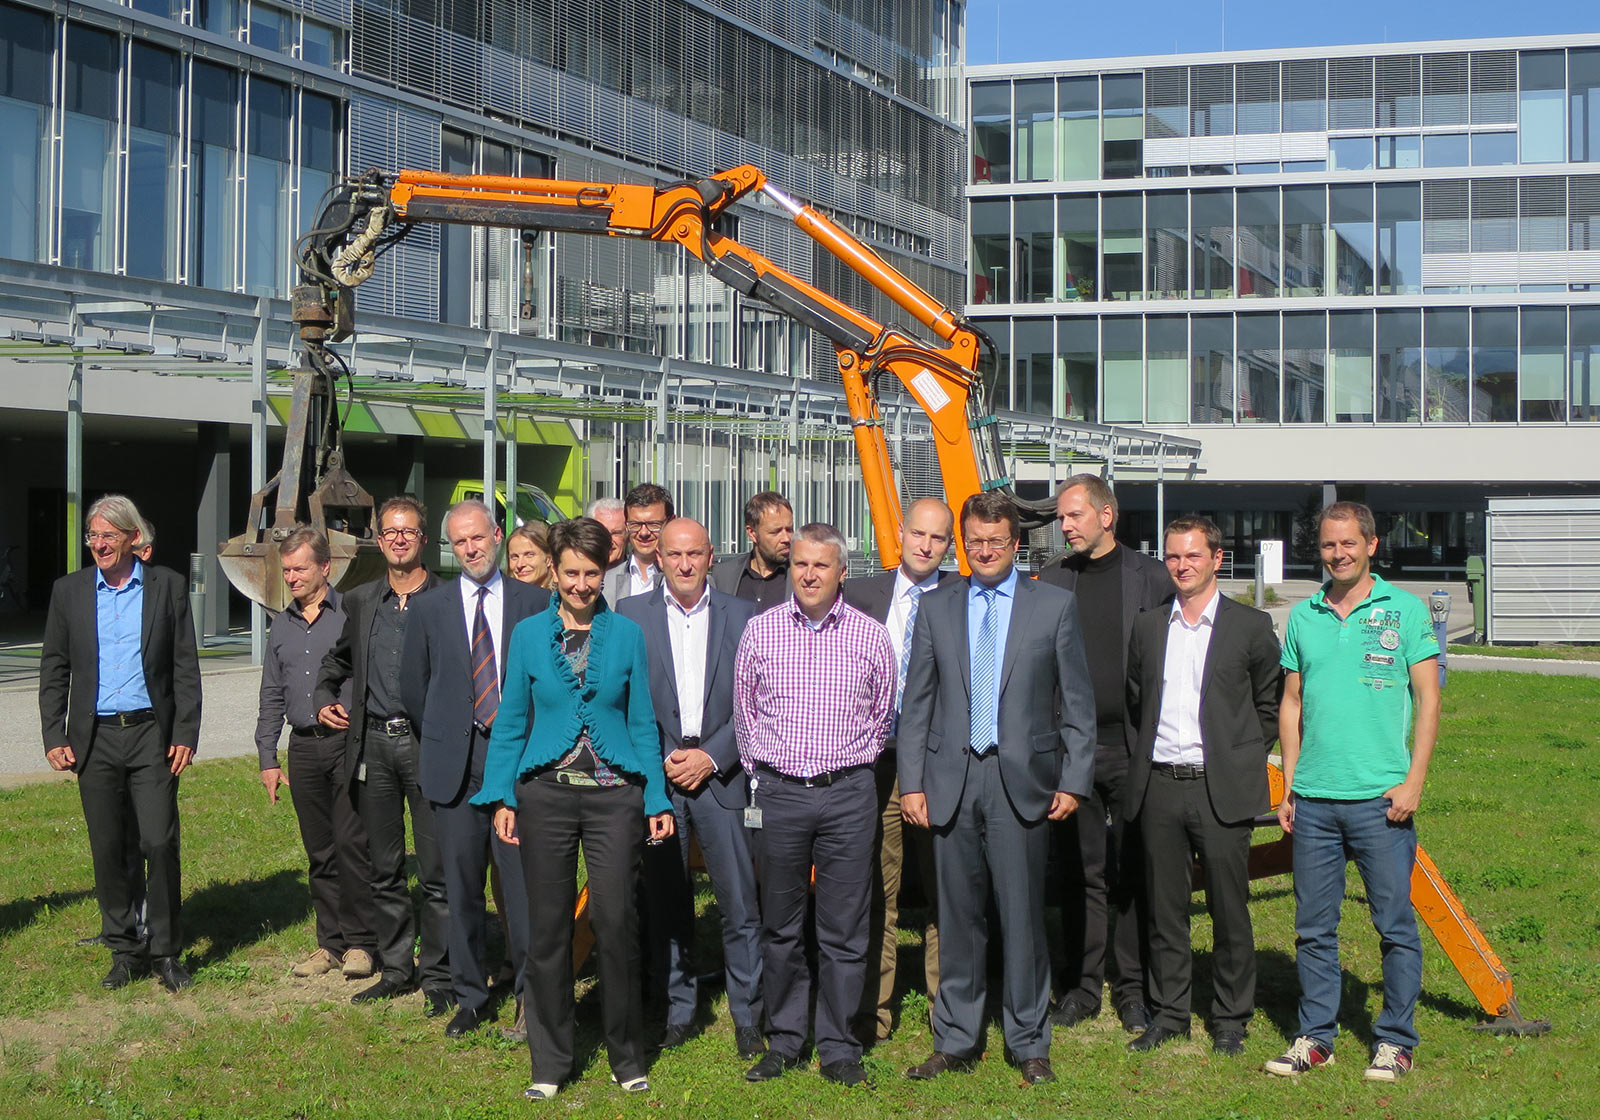 ATP was represented at the Infineon groundbreaking ceremony